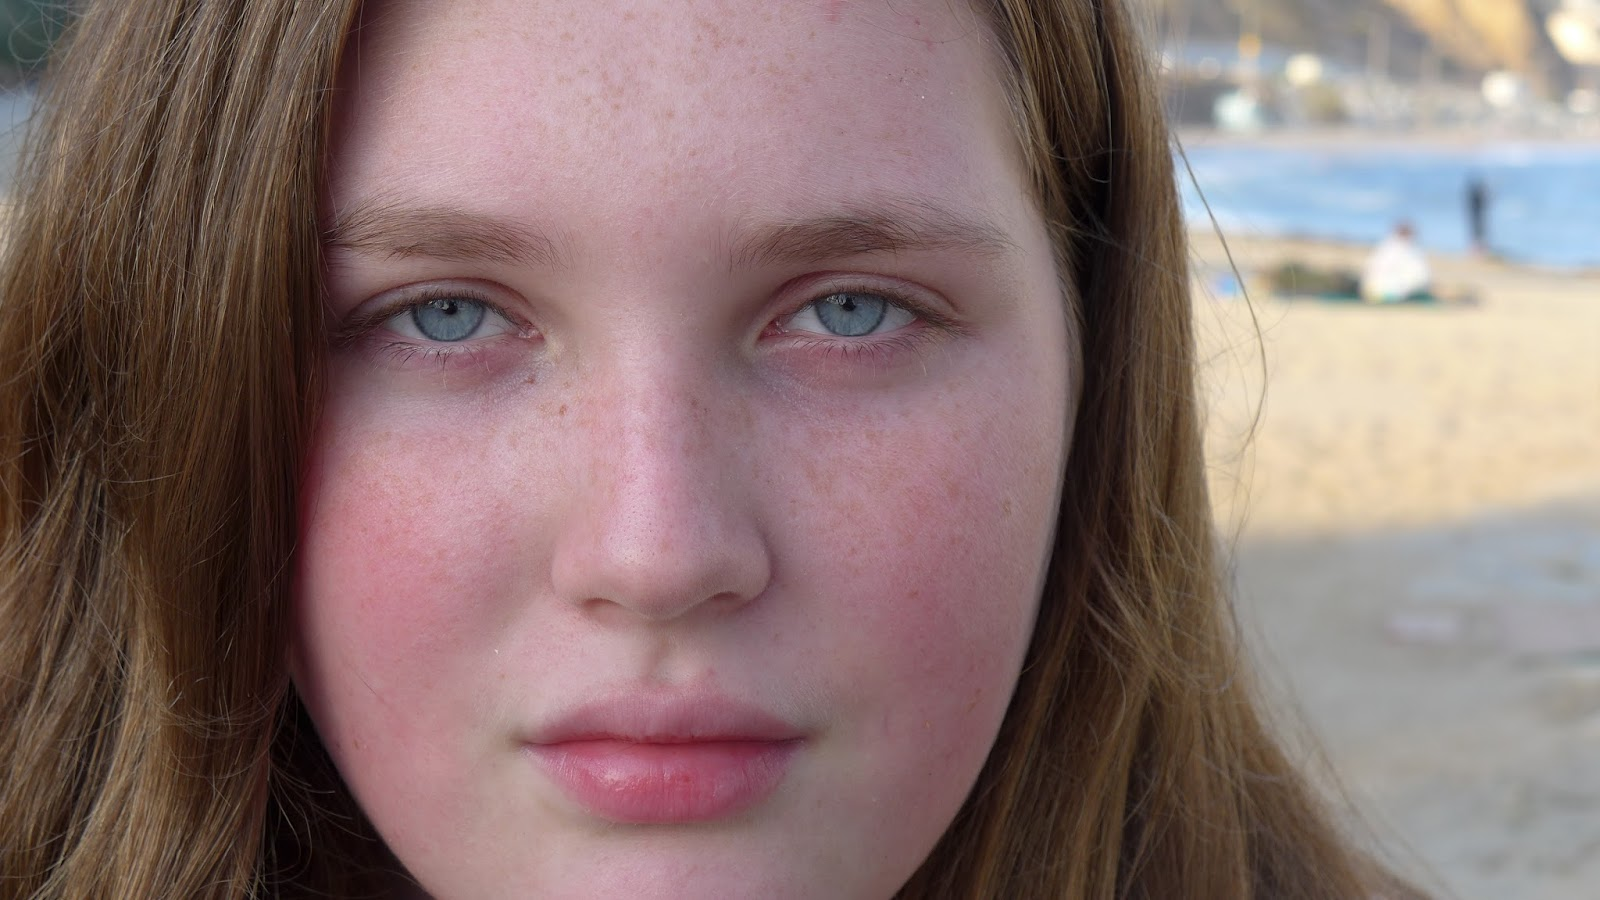 Blue Eyes - Zuma Beach, Malibu, CA